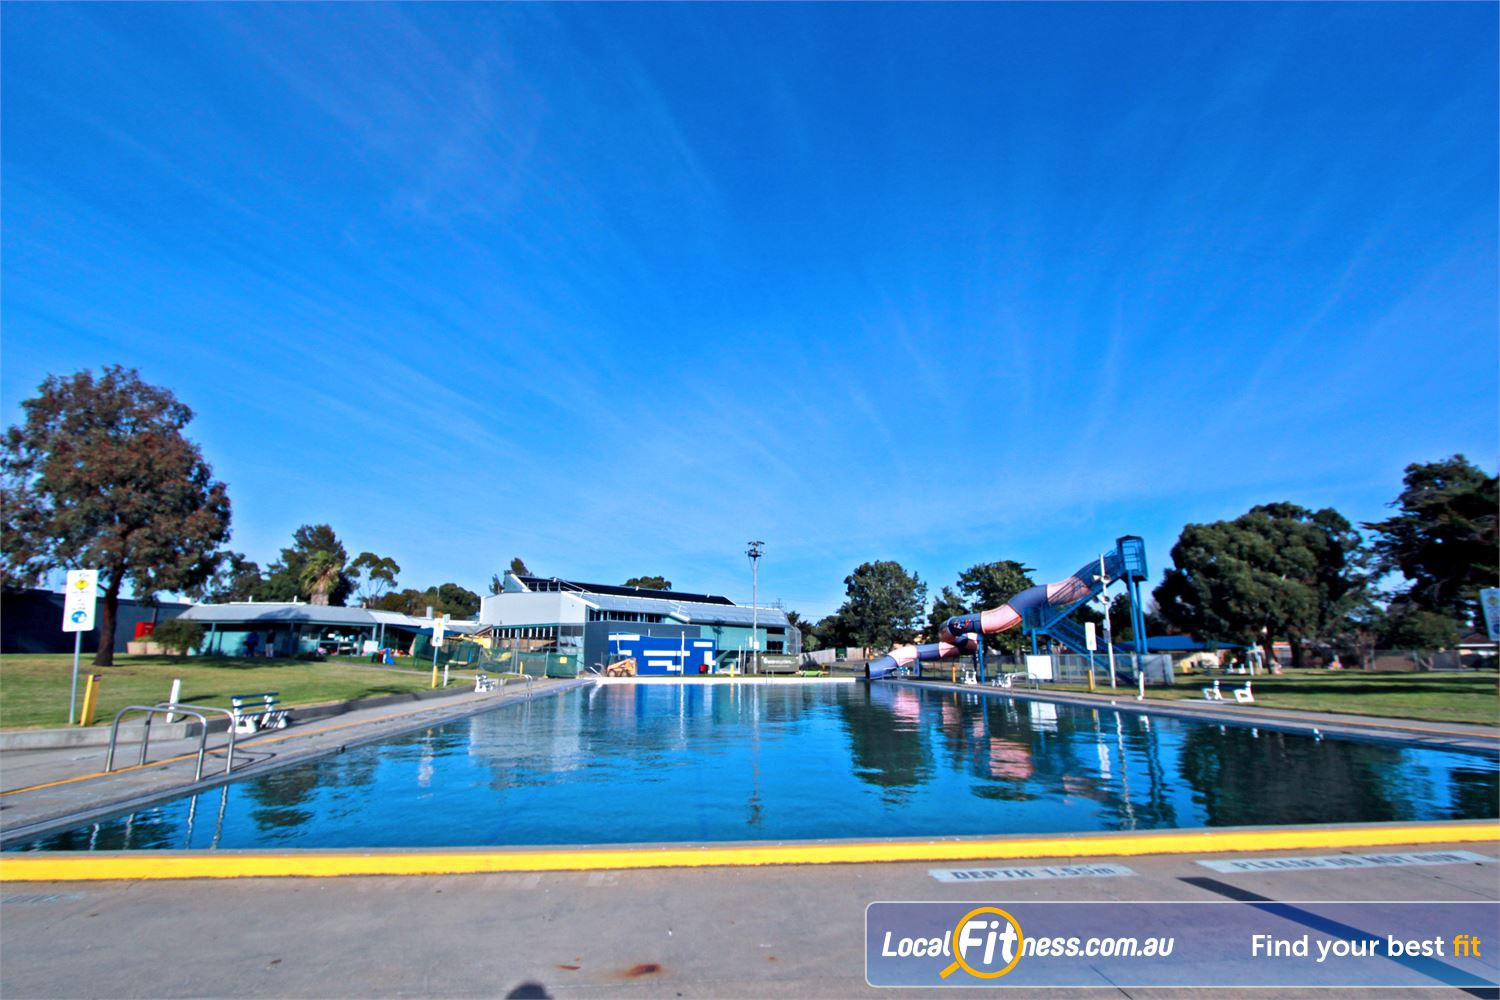 East Keilor Leisure Centre Near Keilor Park Our facilty provides an Olympic size outdoor East Keilor swimming pool.